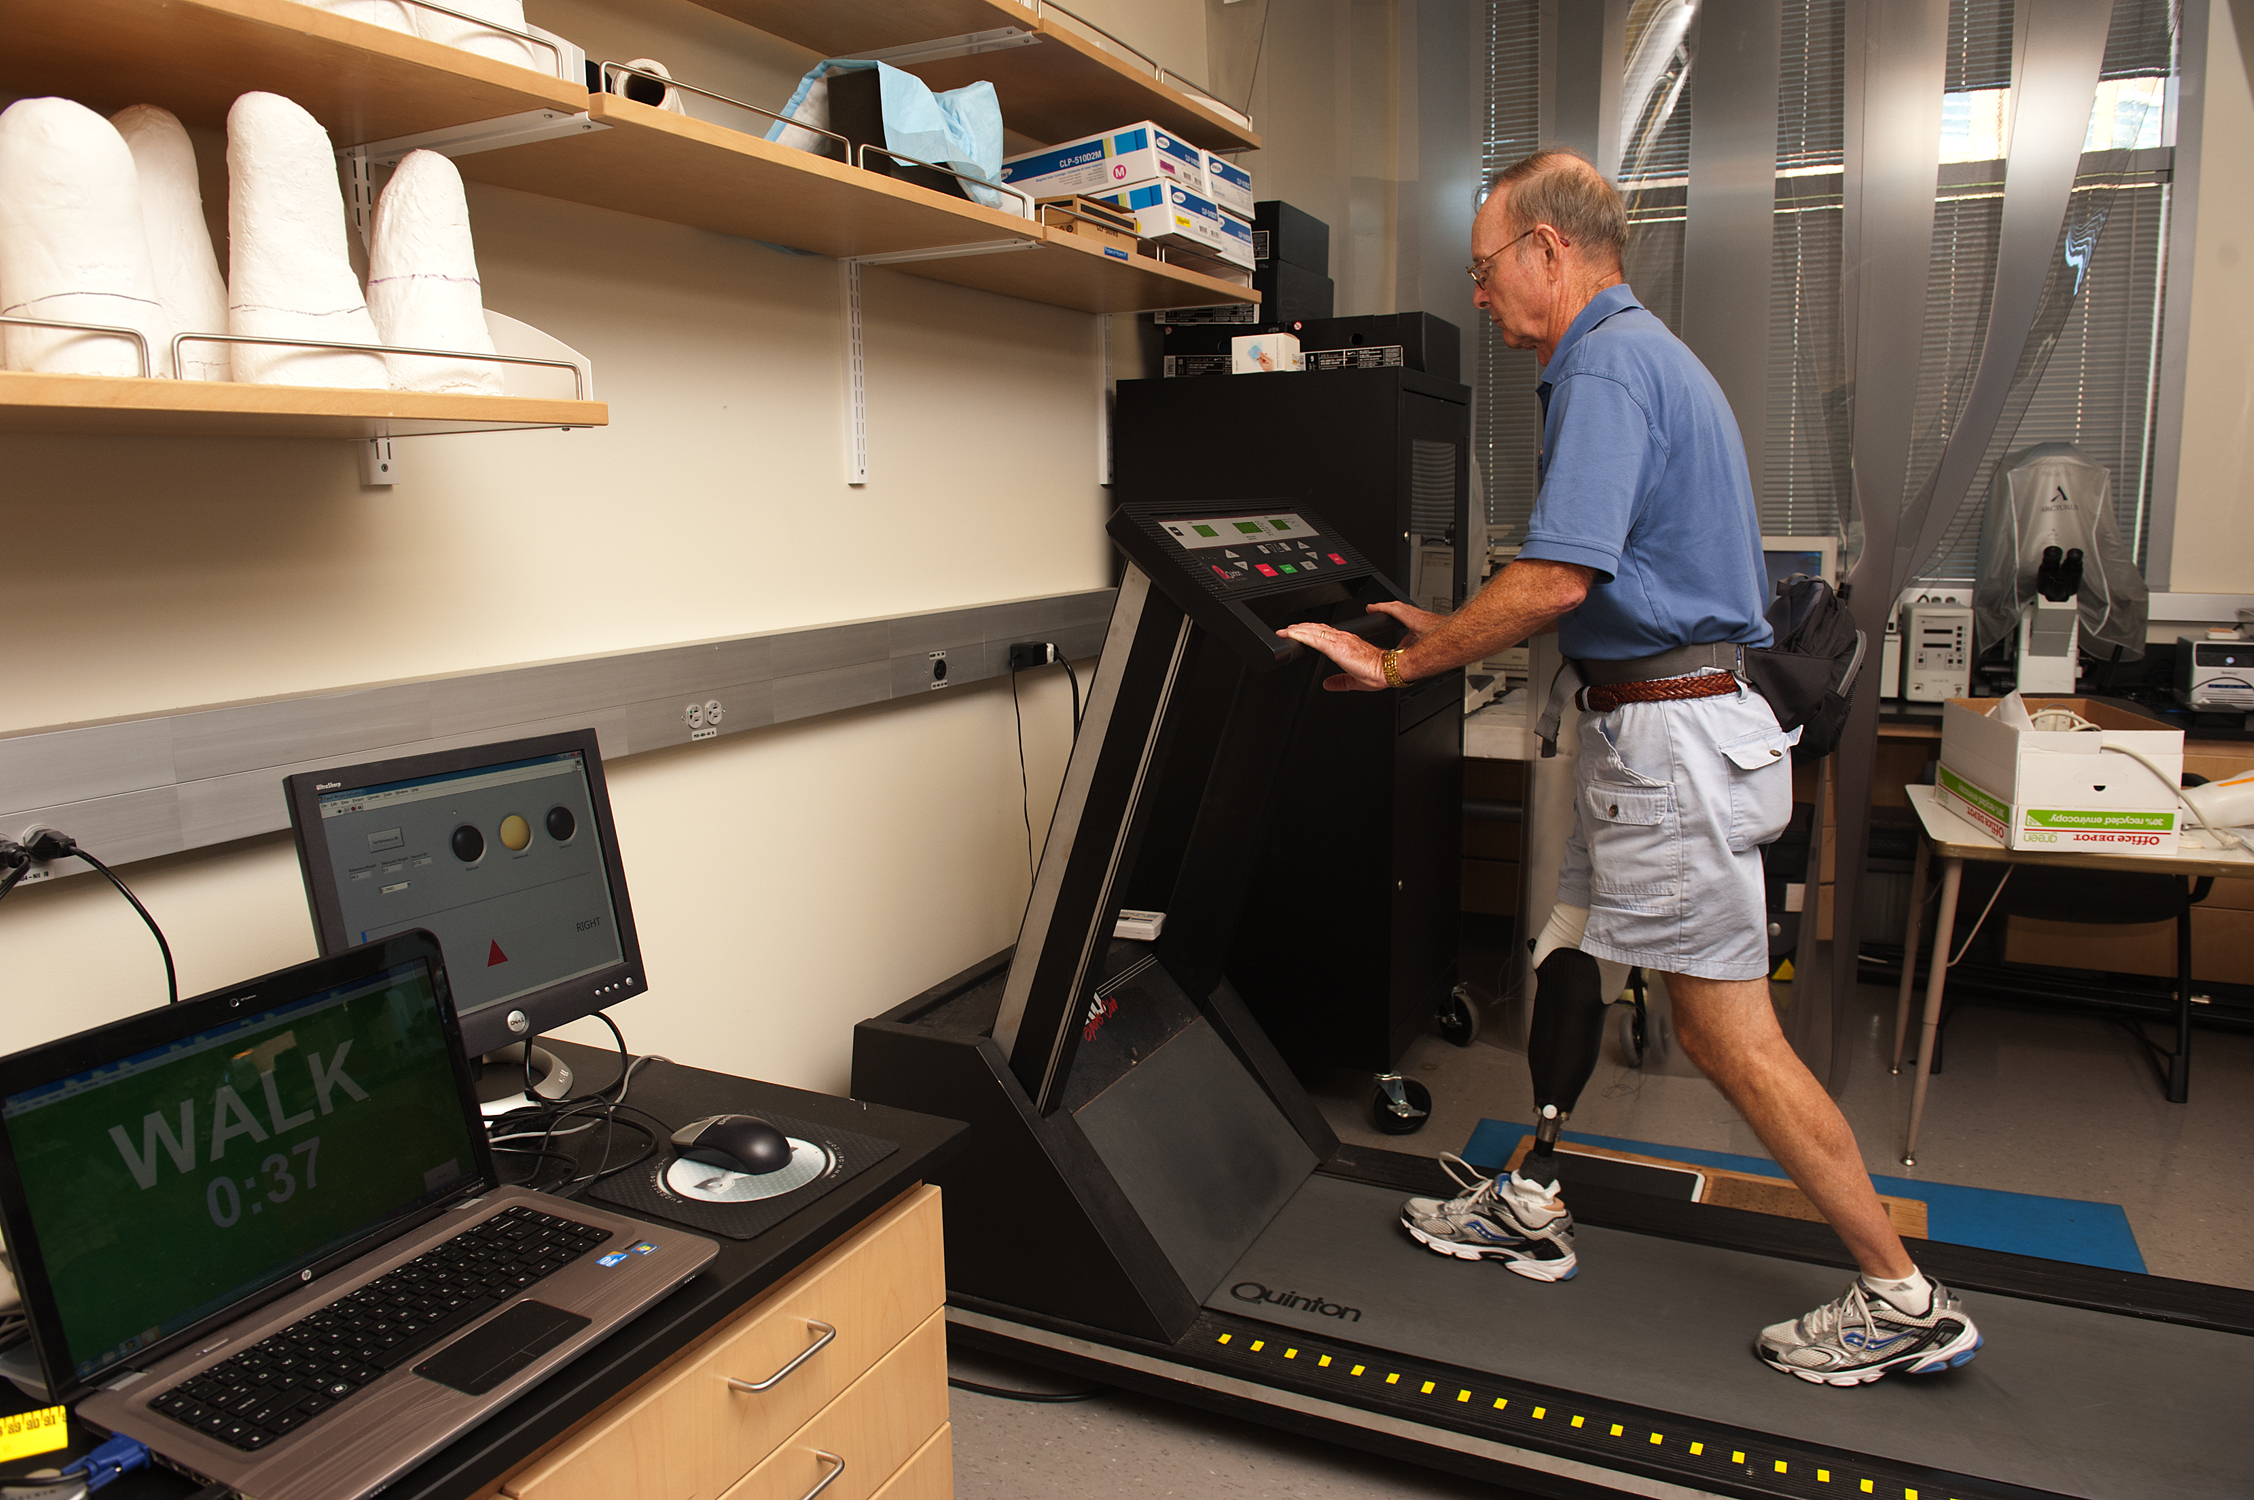 Ron Bailey walks on the treadmill during the testing regimen.